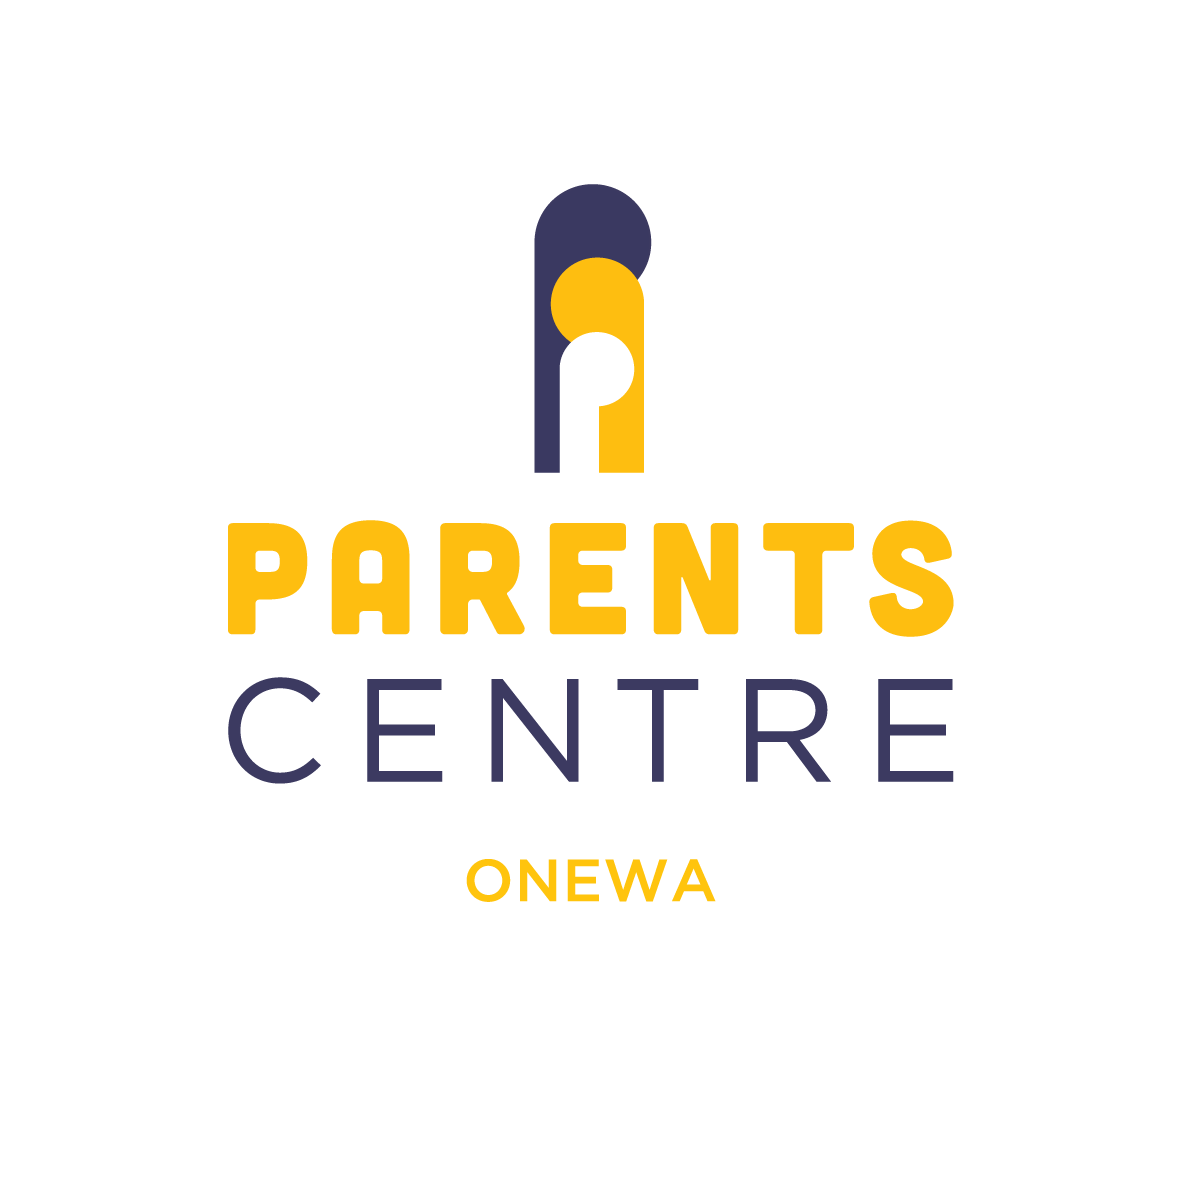 Onewa Parents Centre